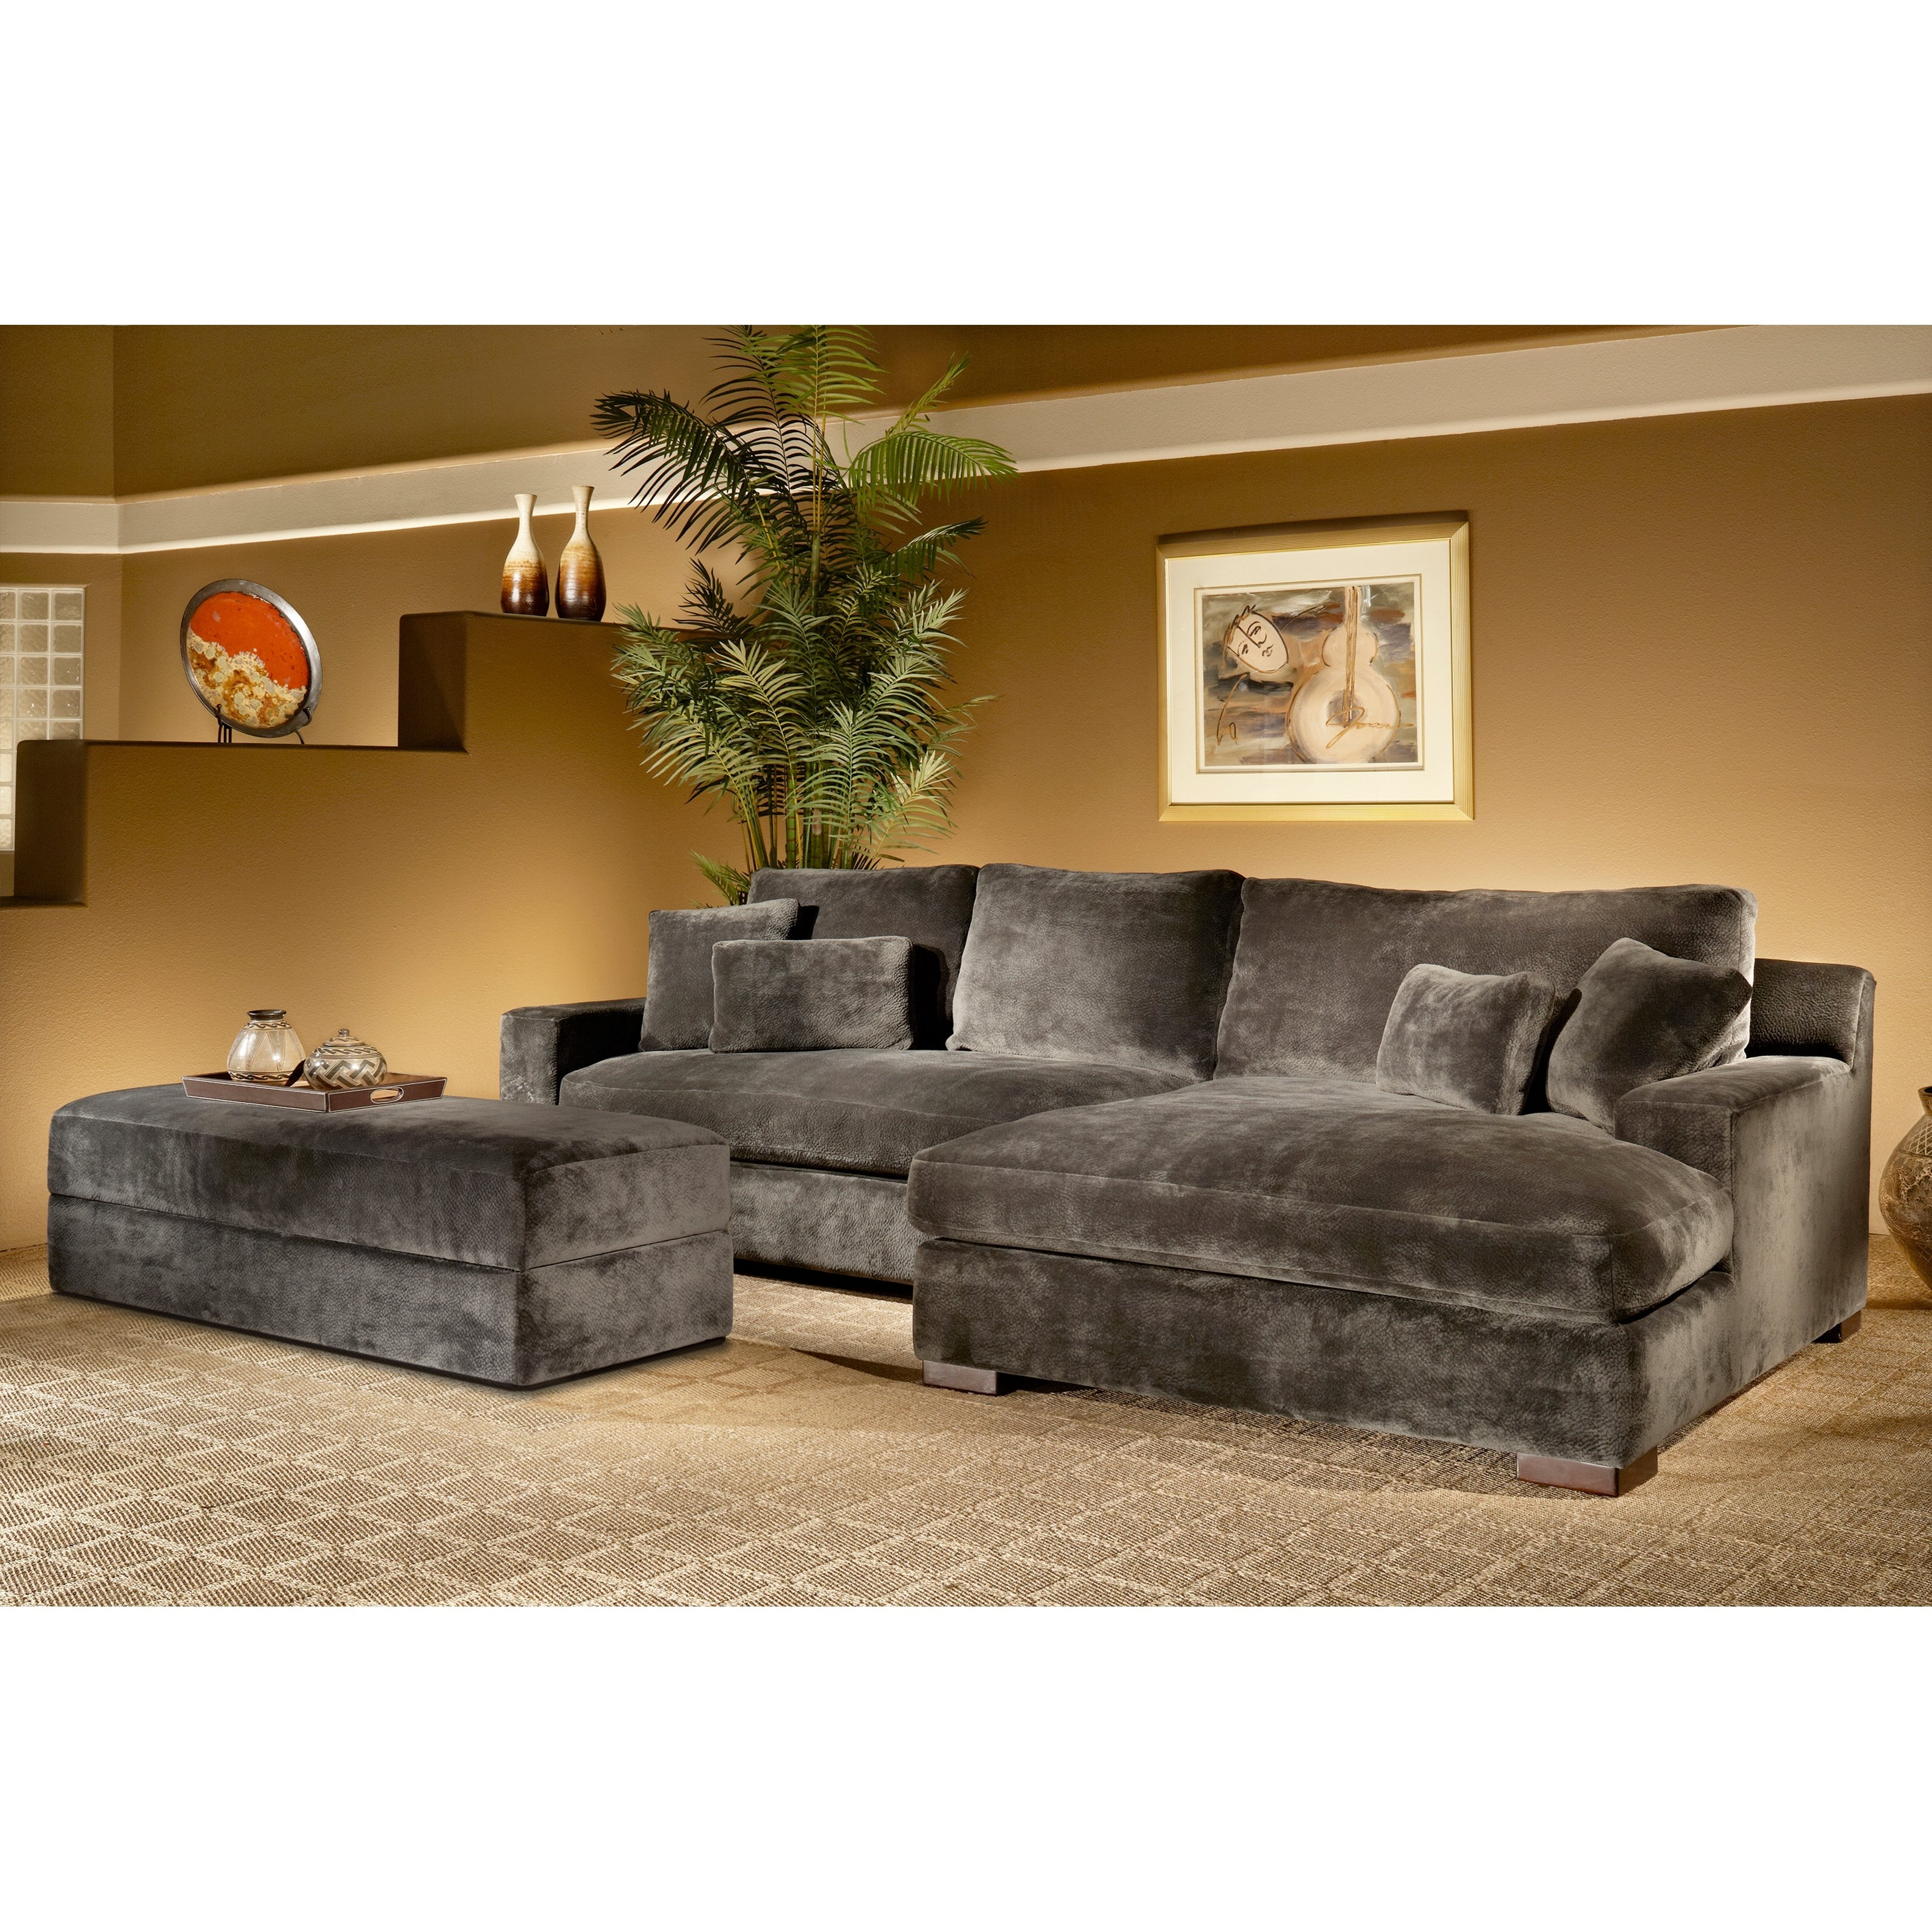 Sectional Sofas With Storage Throughout Well Known Fairmont Designs Doris 2 Piece Sectional Sofa With Storage Ottoman (View 11 of 20)